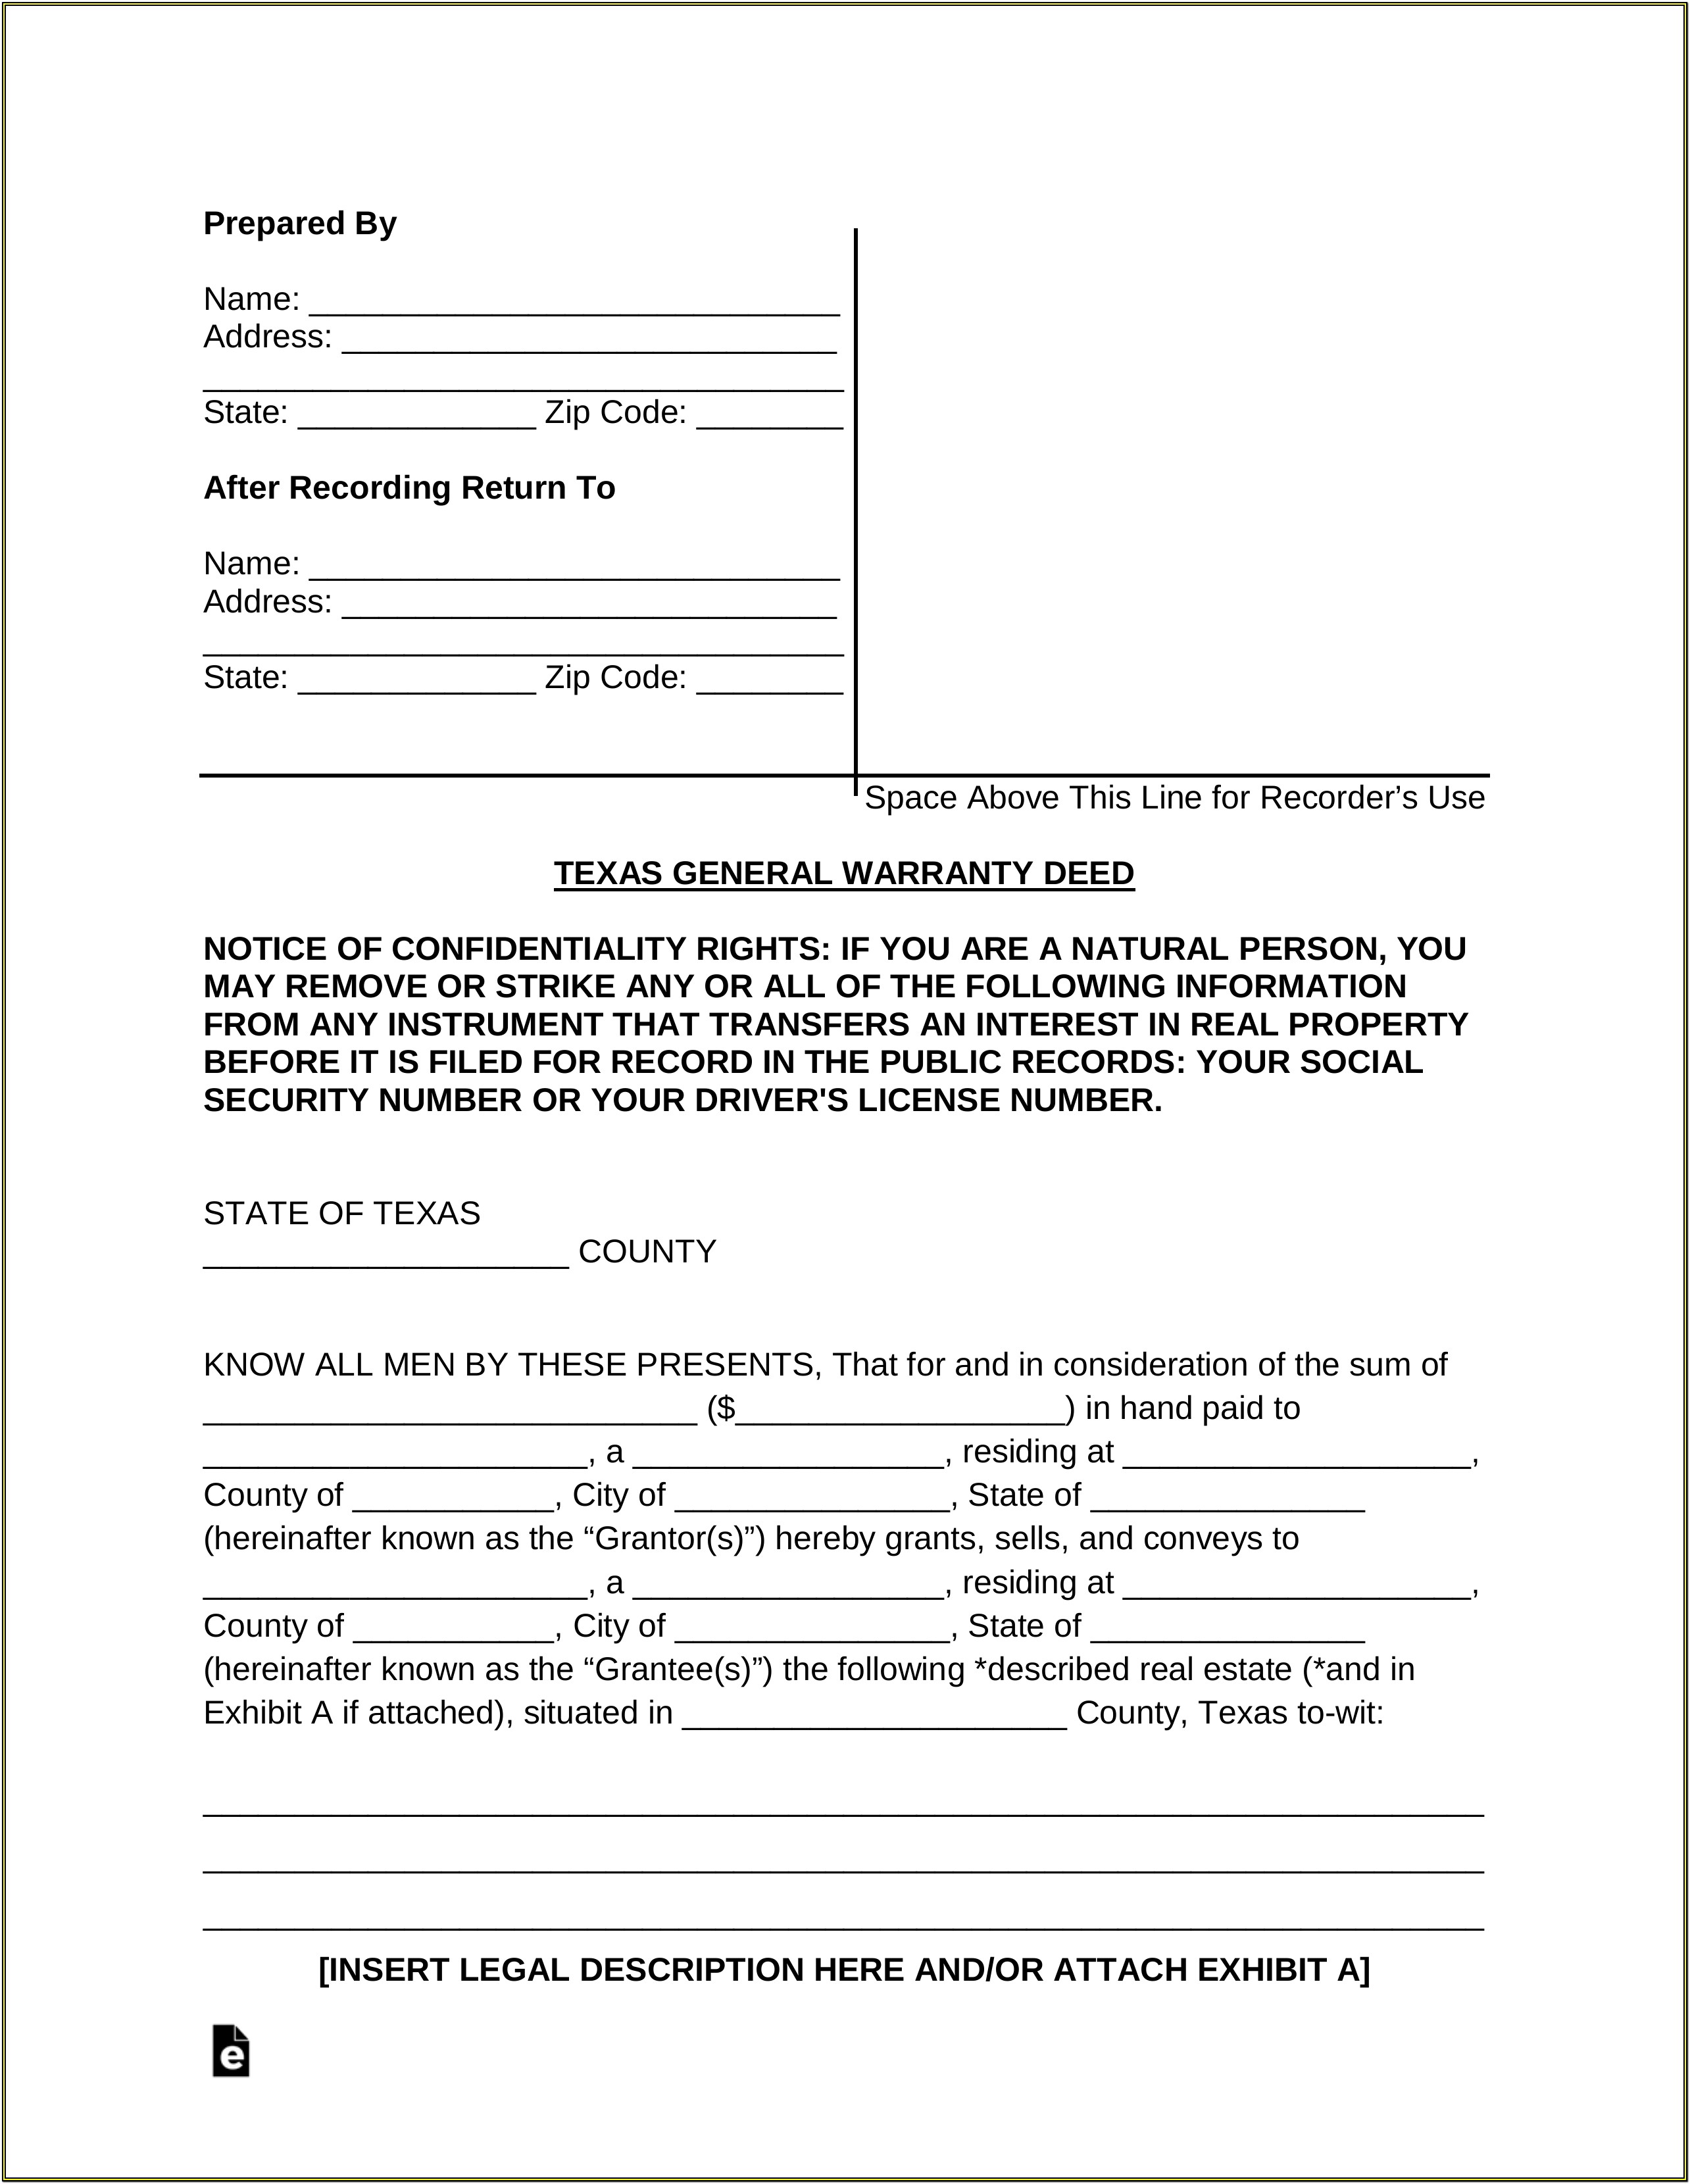 Texas Warranty Deed Form